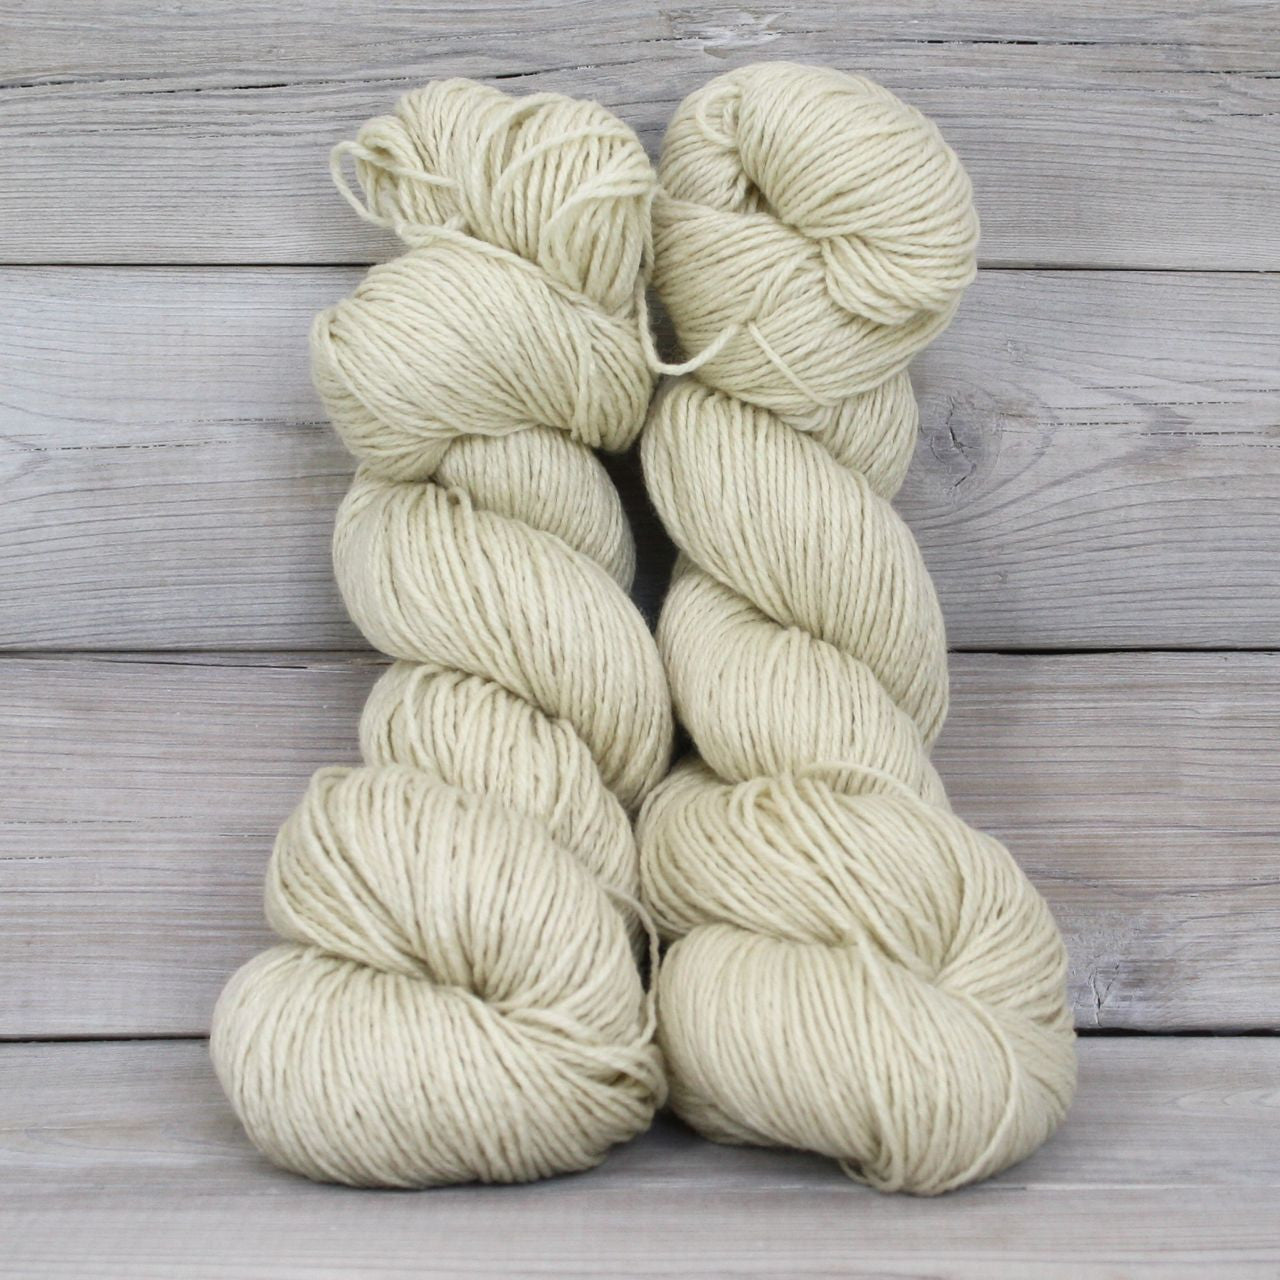 Zeta Yarn | Colorway: Natural